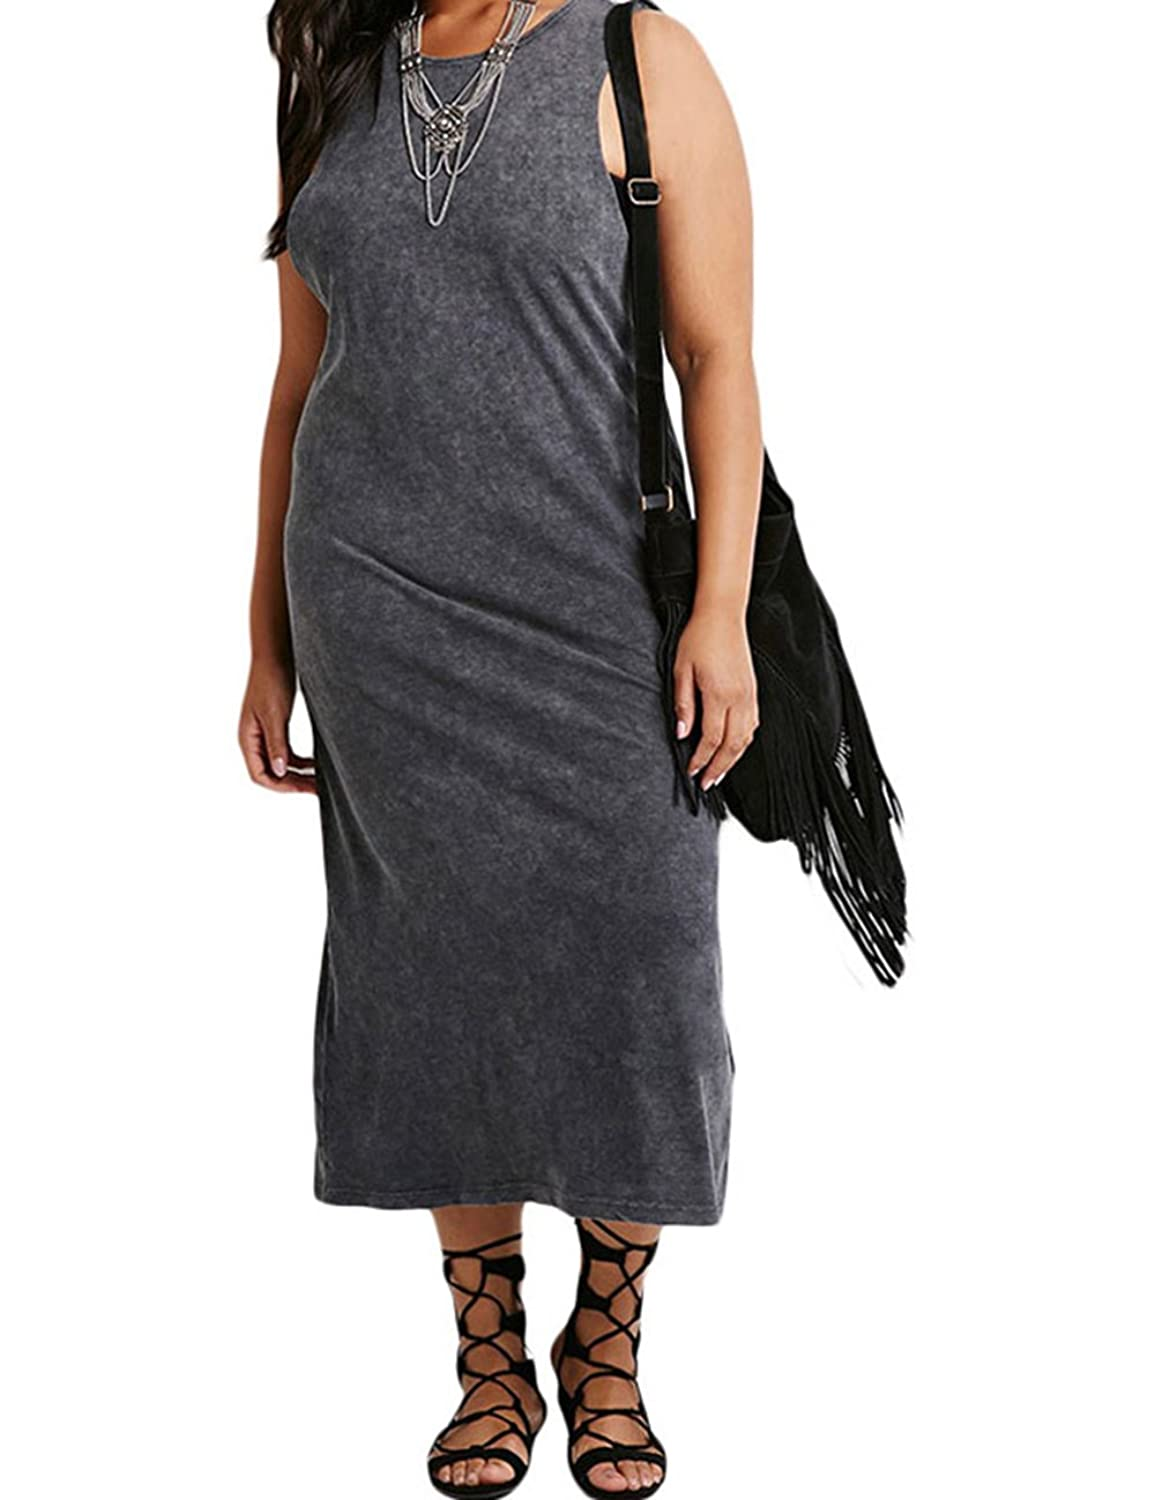 FQHOME Womens Plus Size Cutout-Back Midi Dress